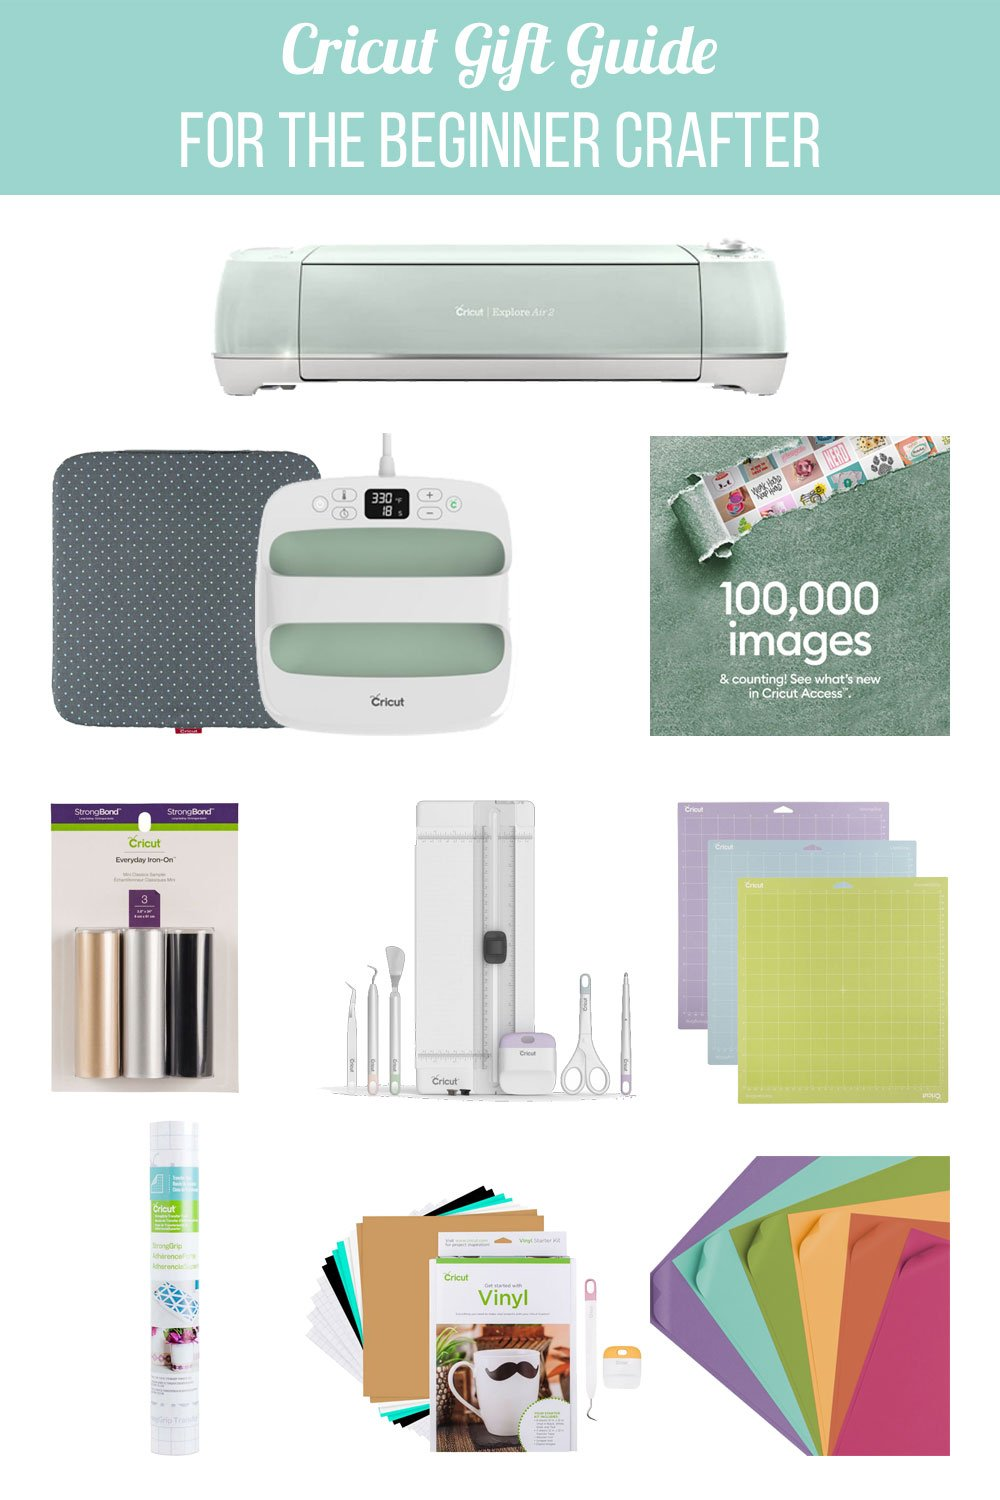 Cricut Gift Guide for Beginner Crafter